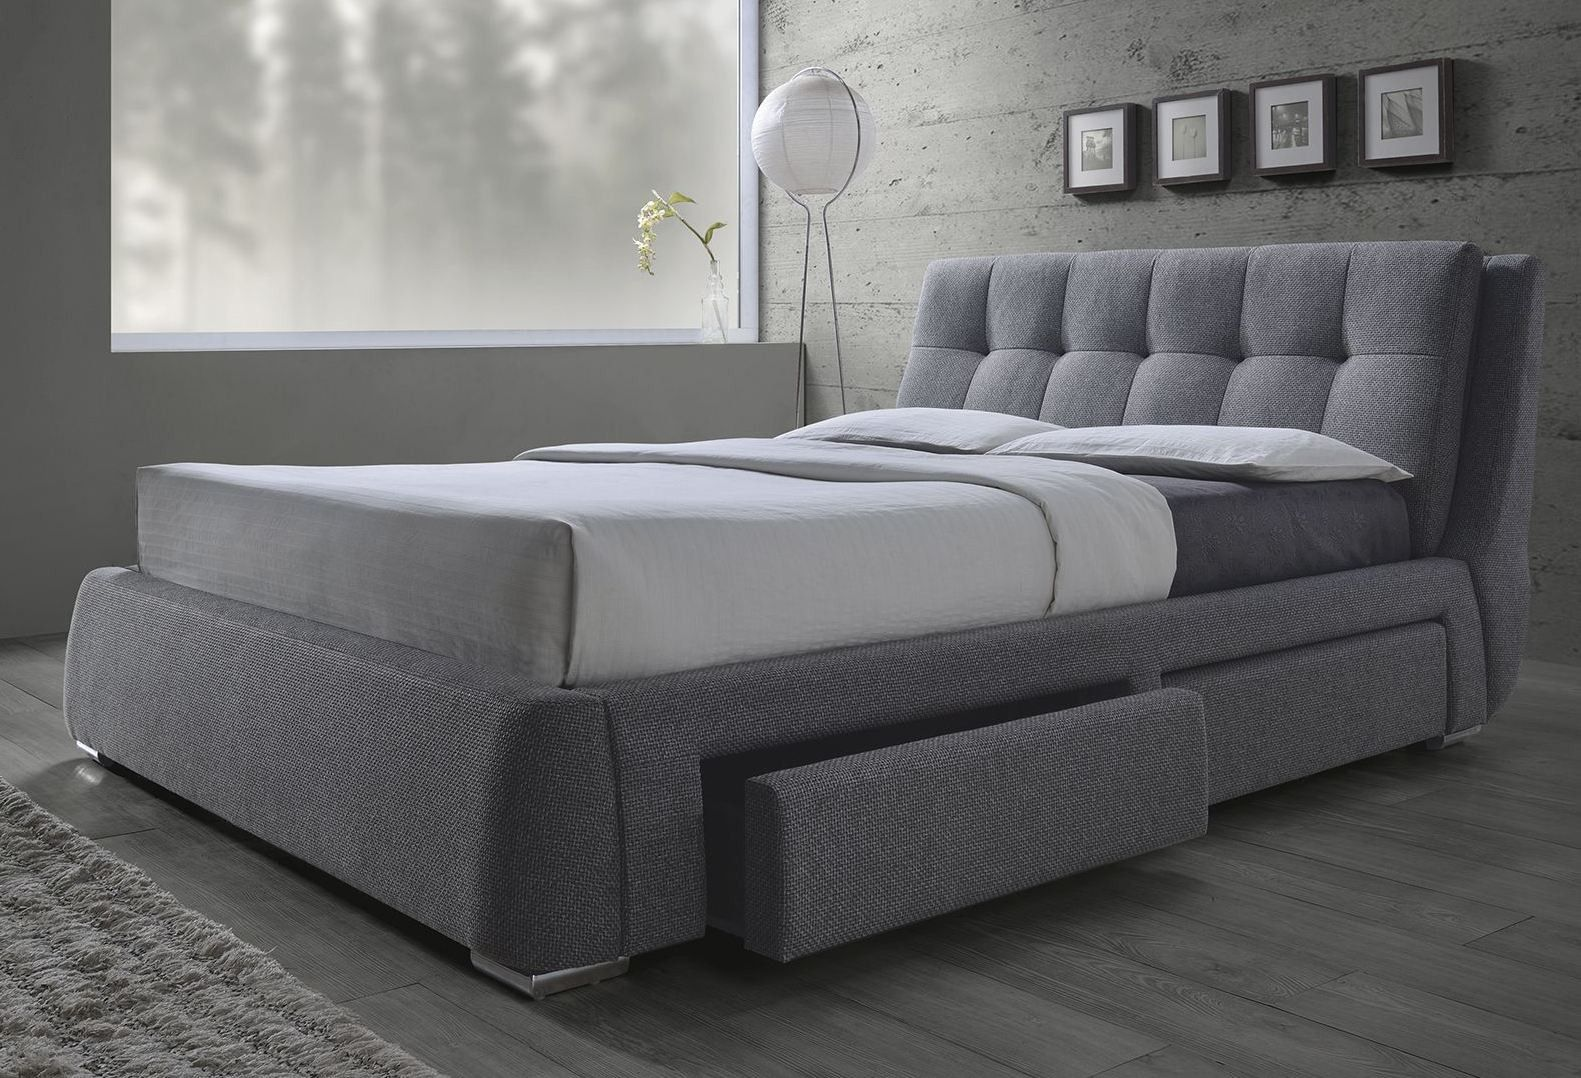 Fenbrook Gray King Platform Storage Bed by Coaster - You\'ll get the ...